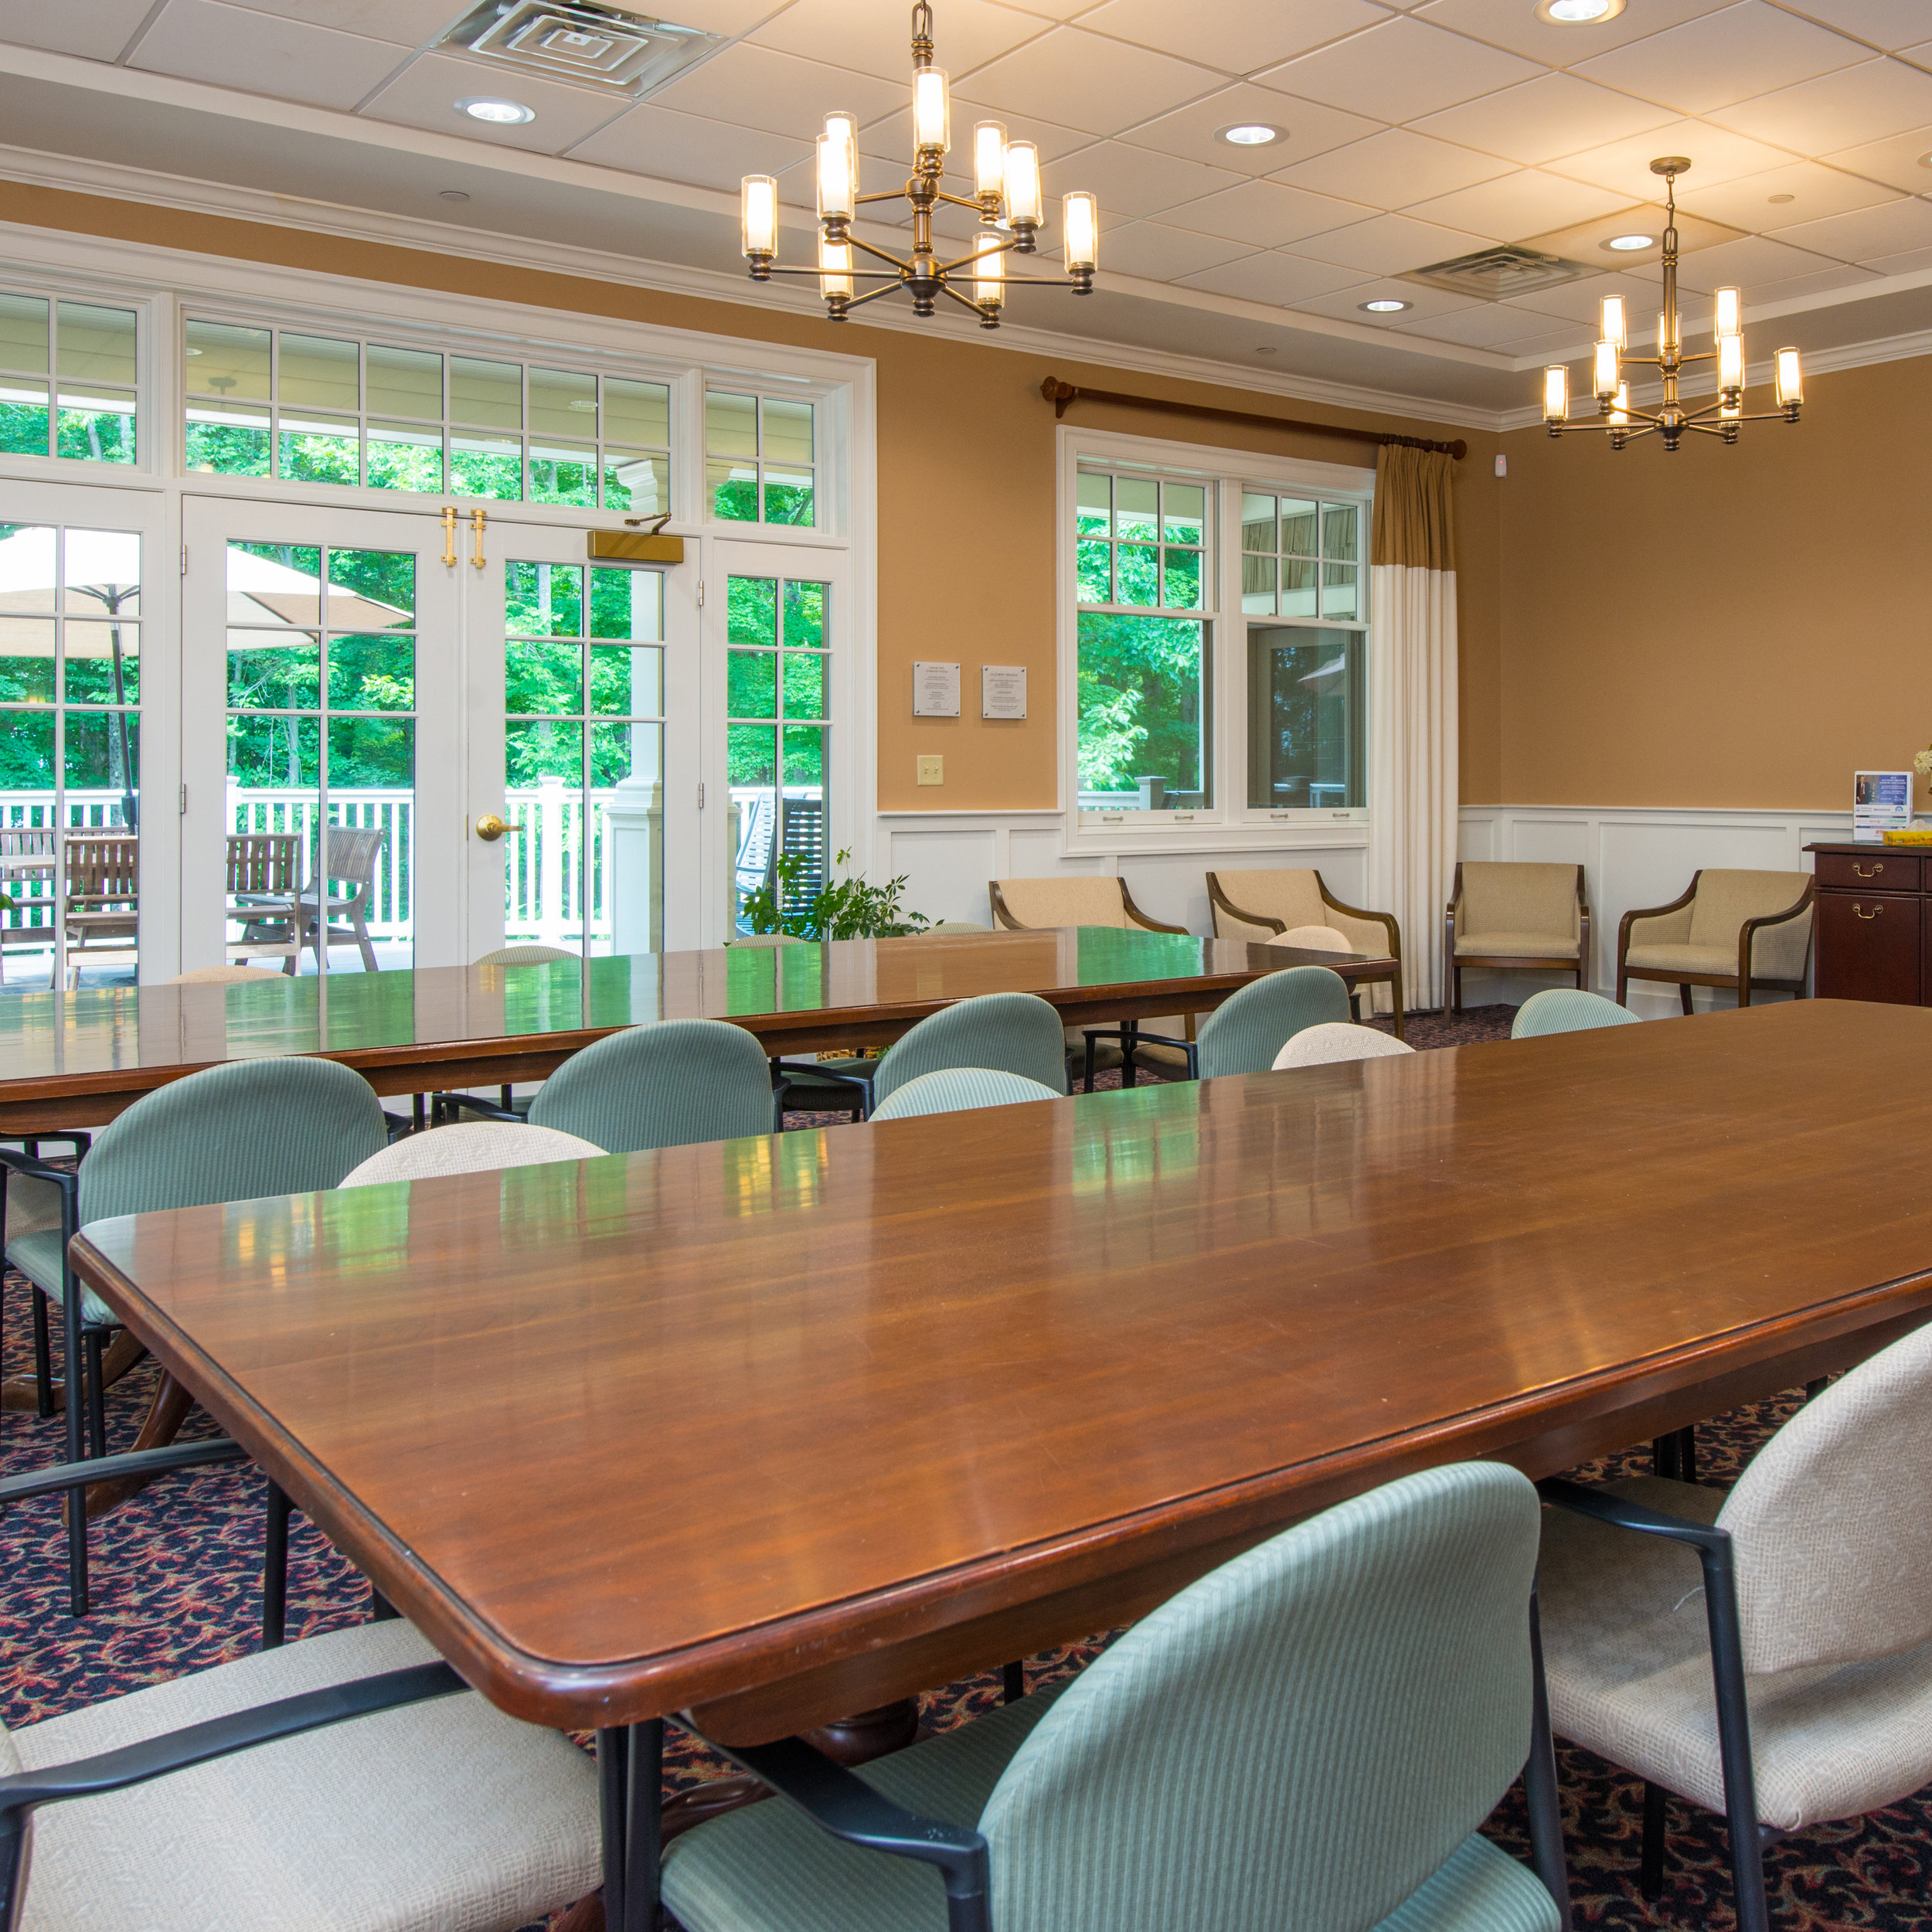 $500 to sustain our 1st floor conference room off the deck